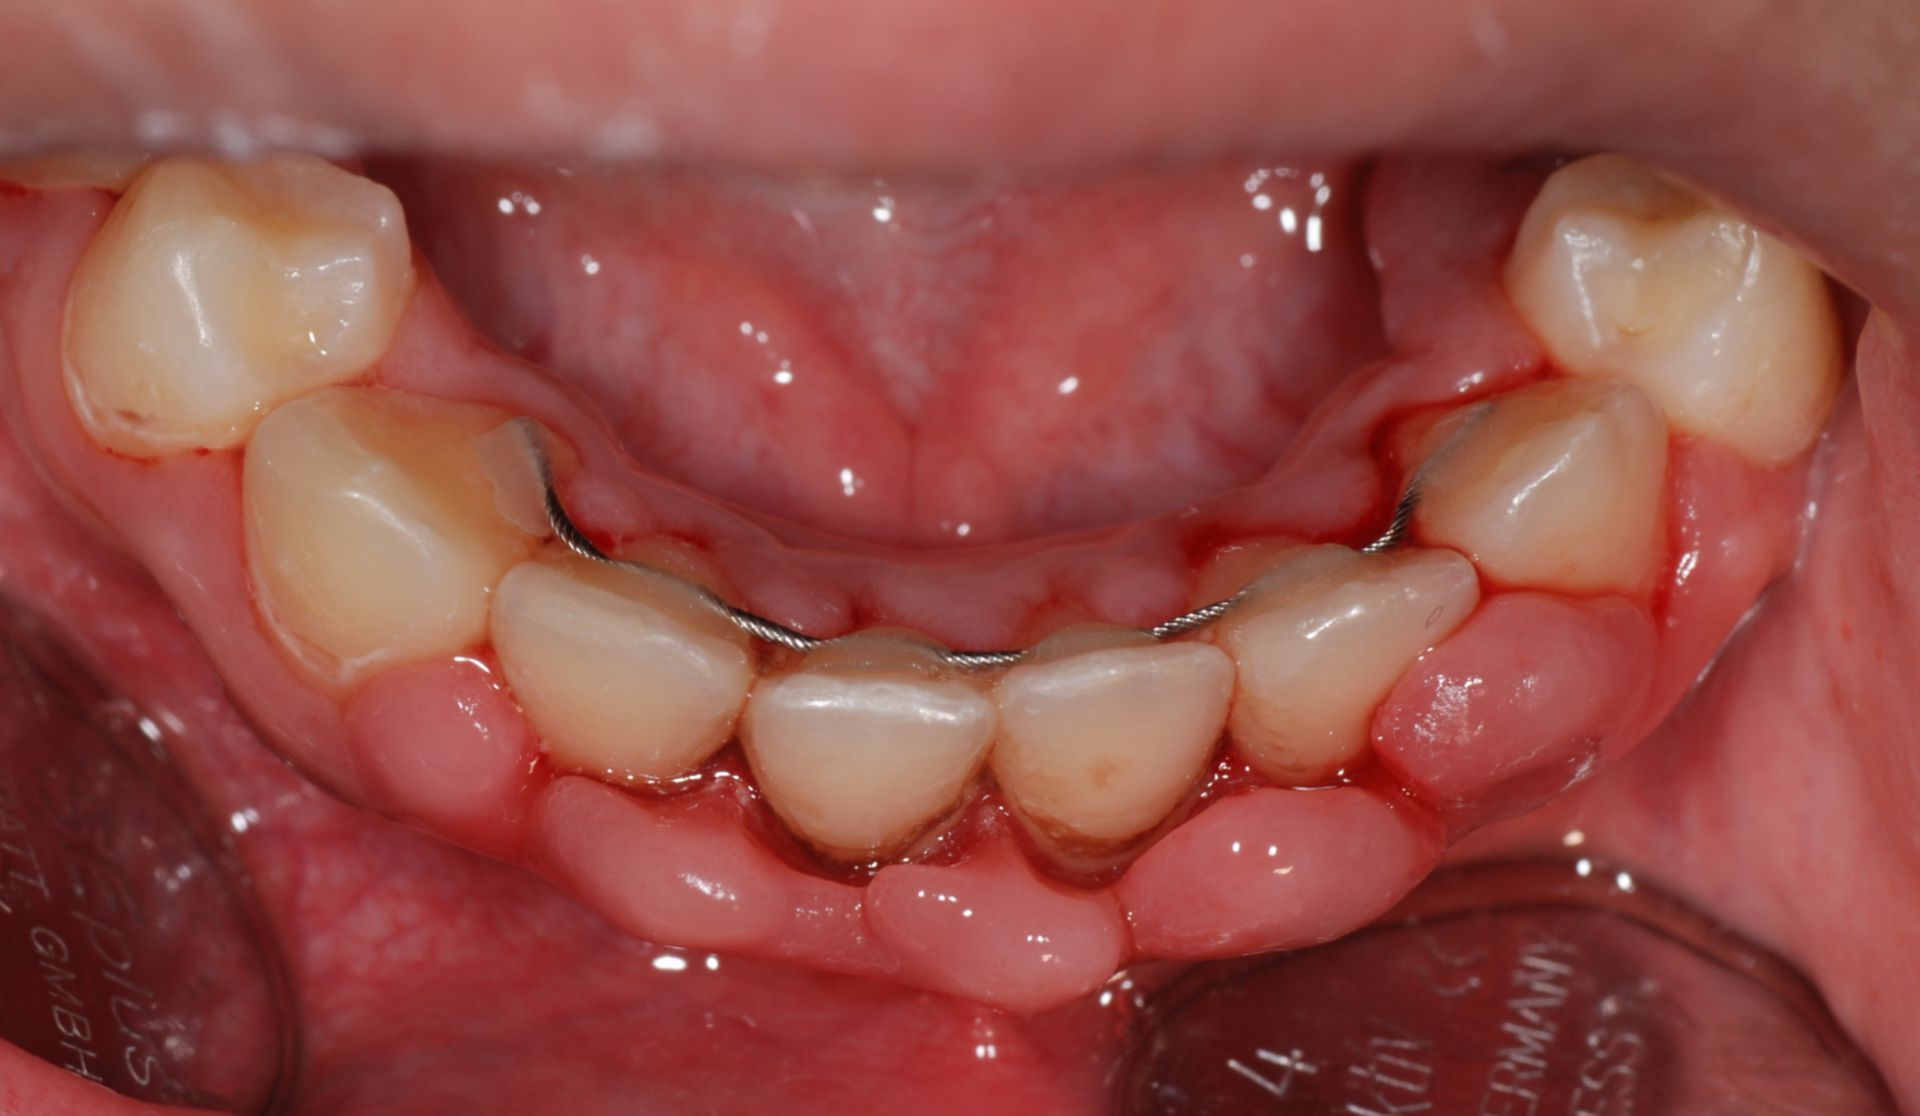 Gingival hyperplasia, lower jaw, front